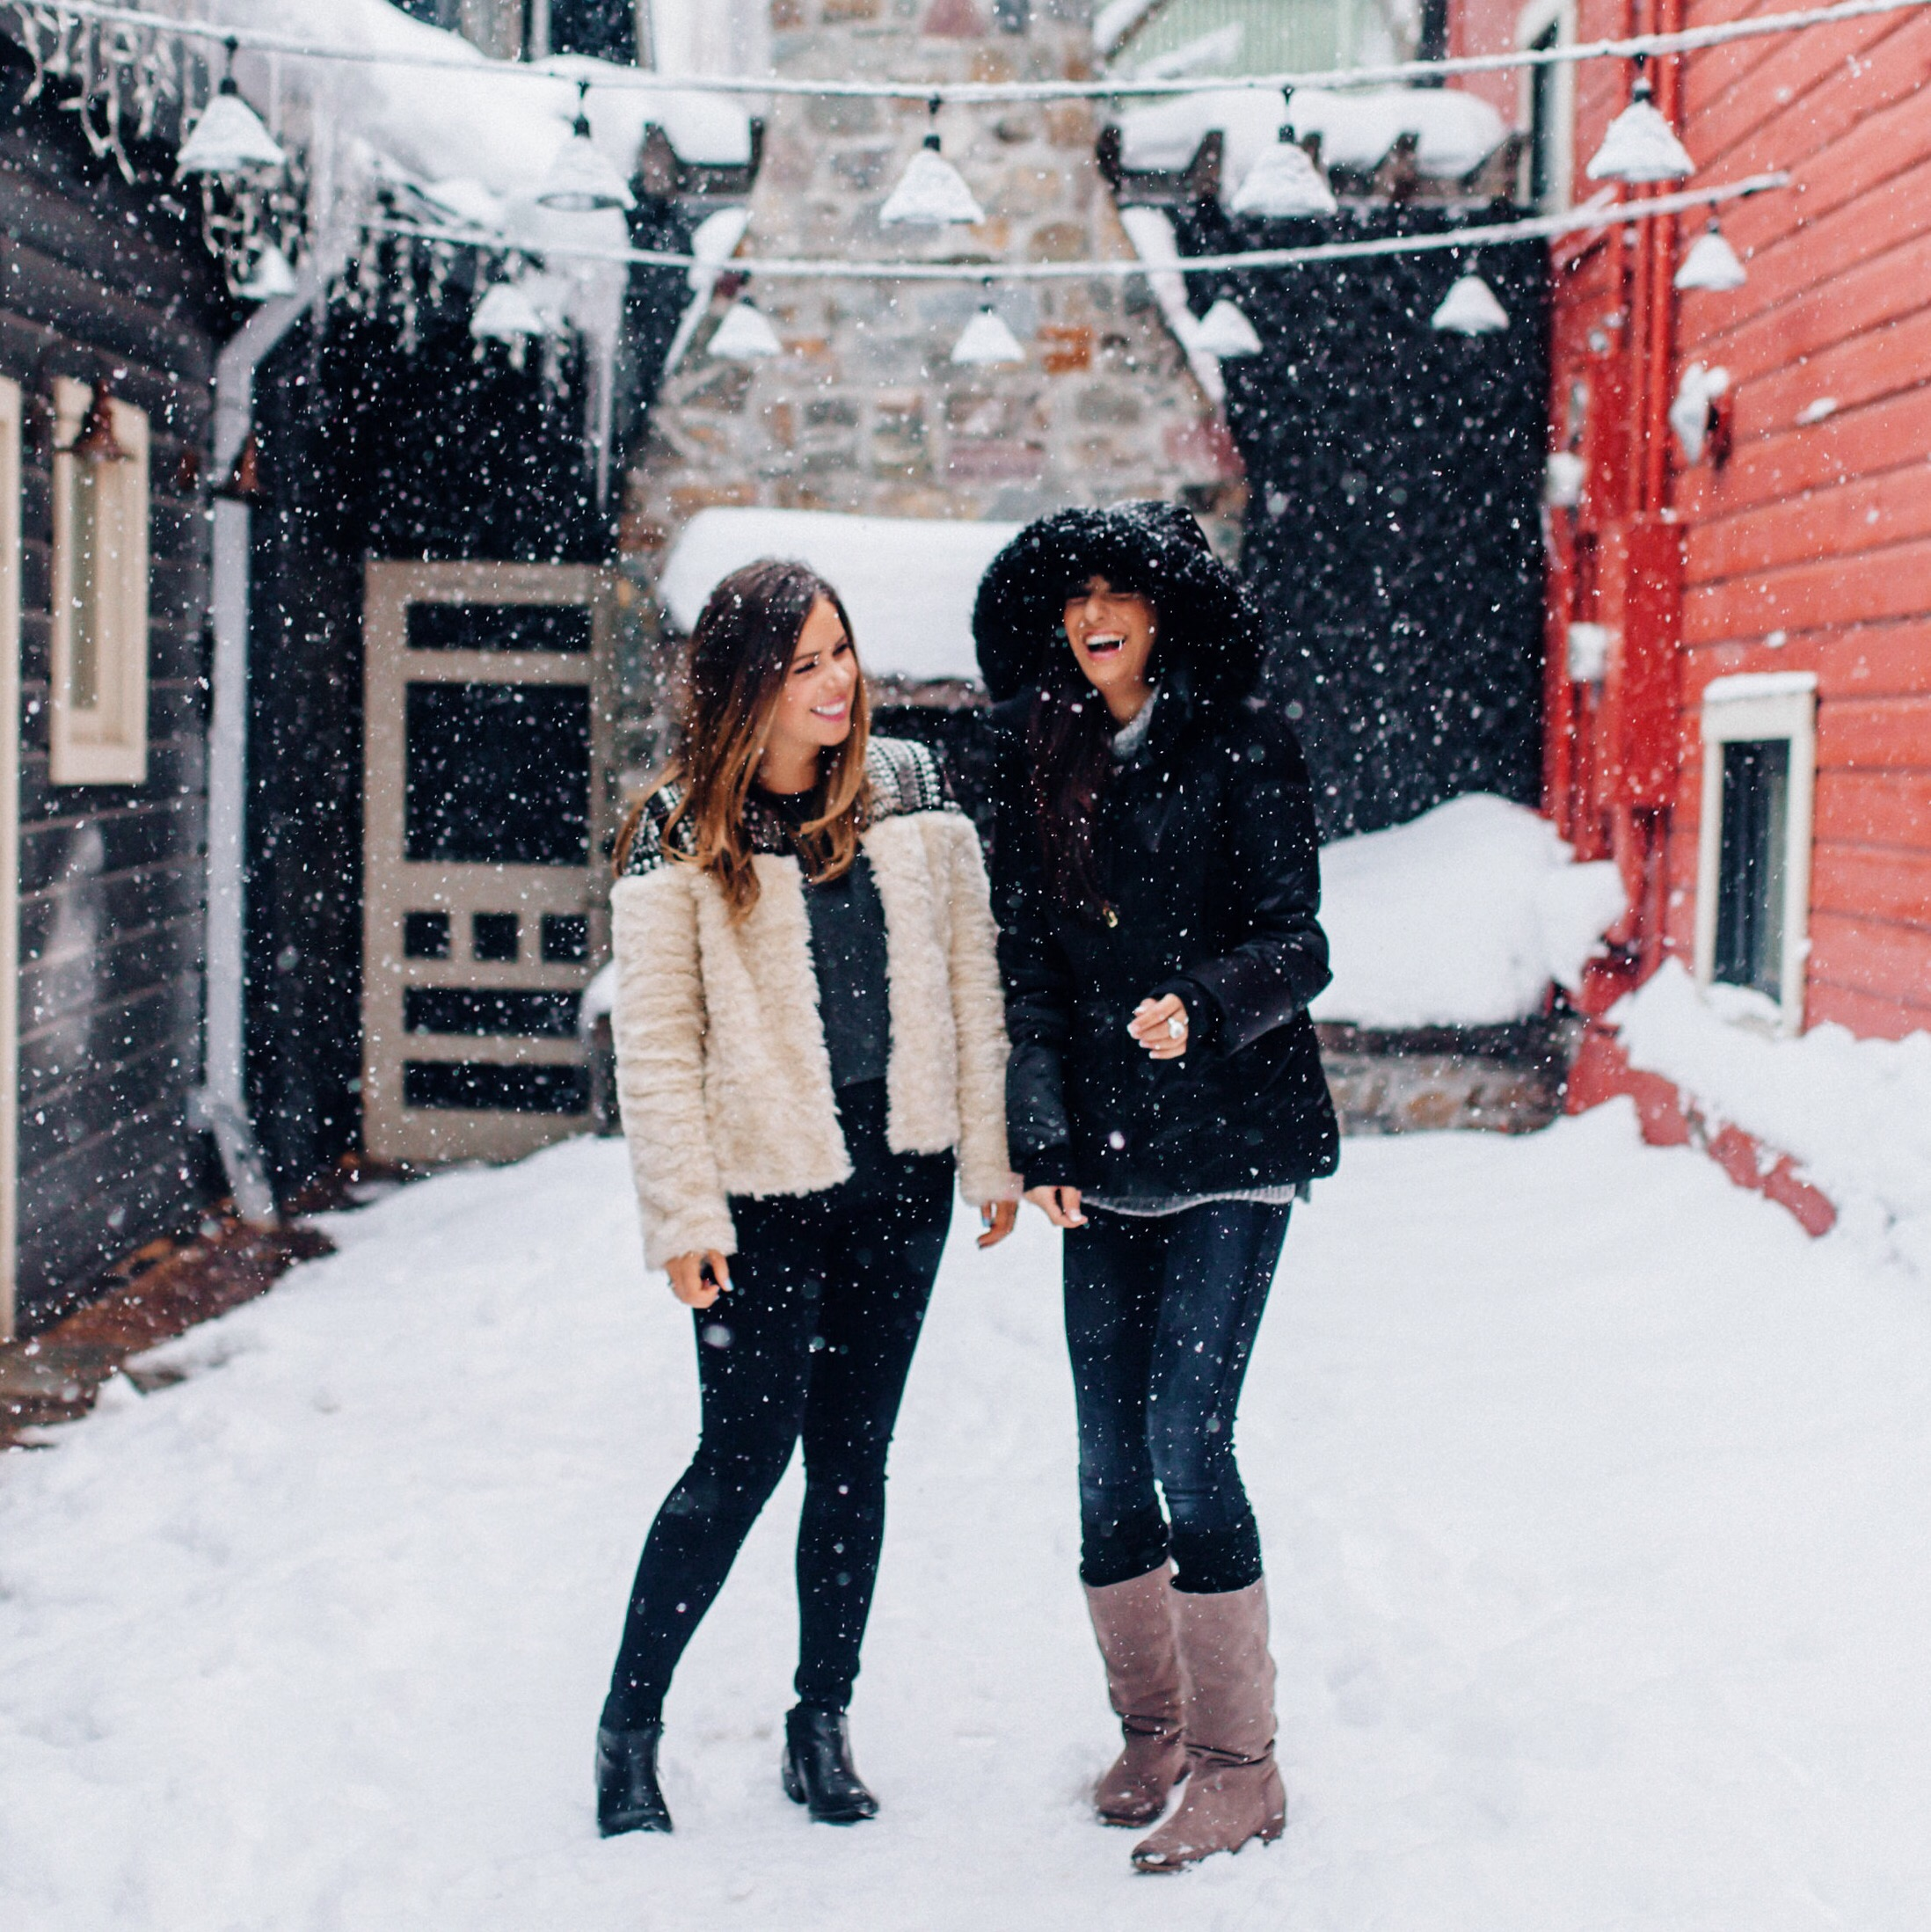 Snow days in Park City / photo by http://www.anchoredimagephotography.com/